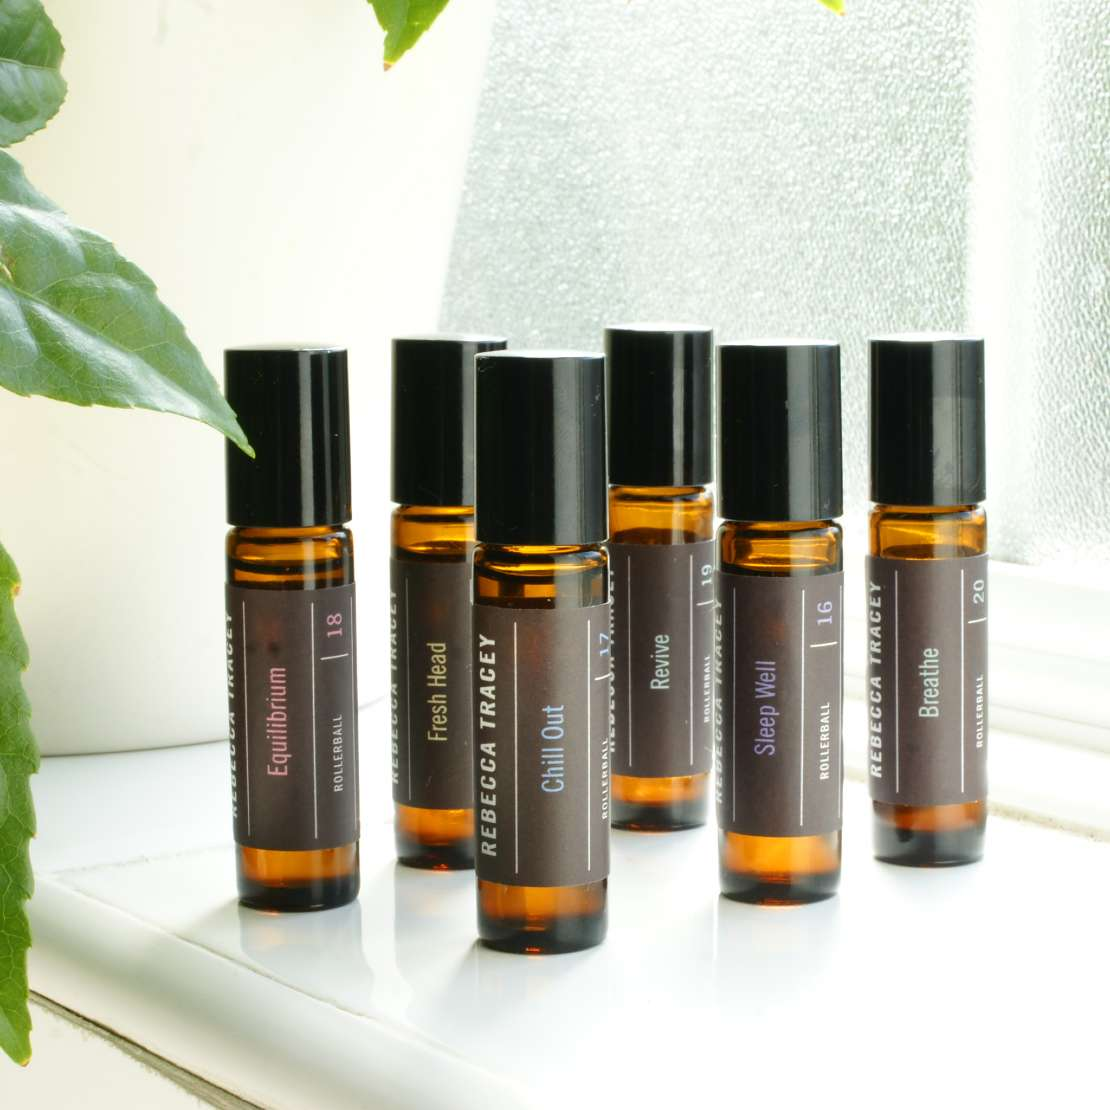 These rollerballs by Rebecca Tracey are the ultimate wellbeing pick-me-up